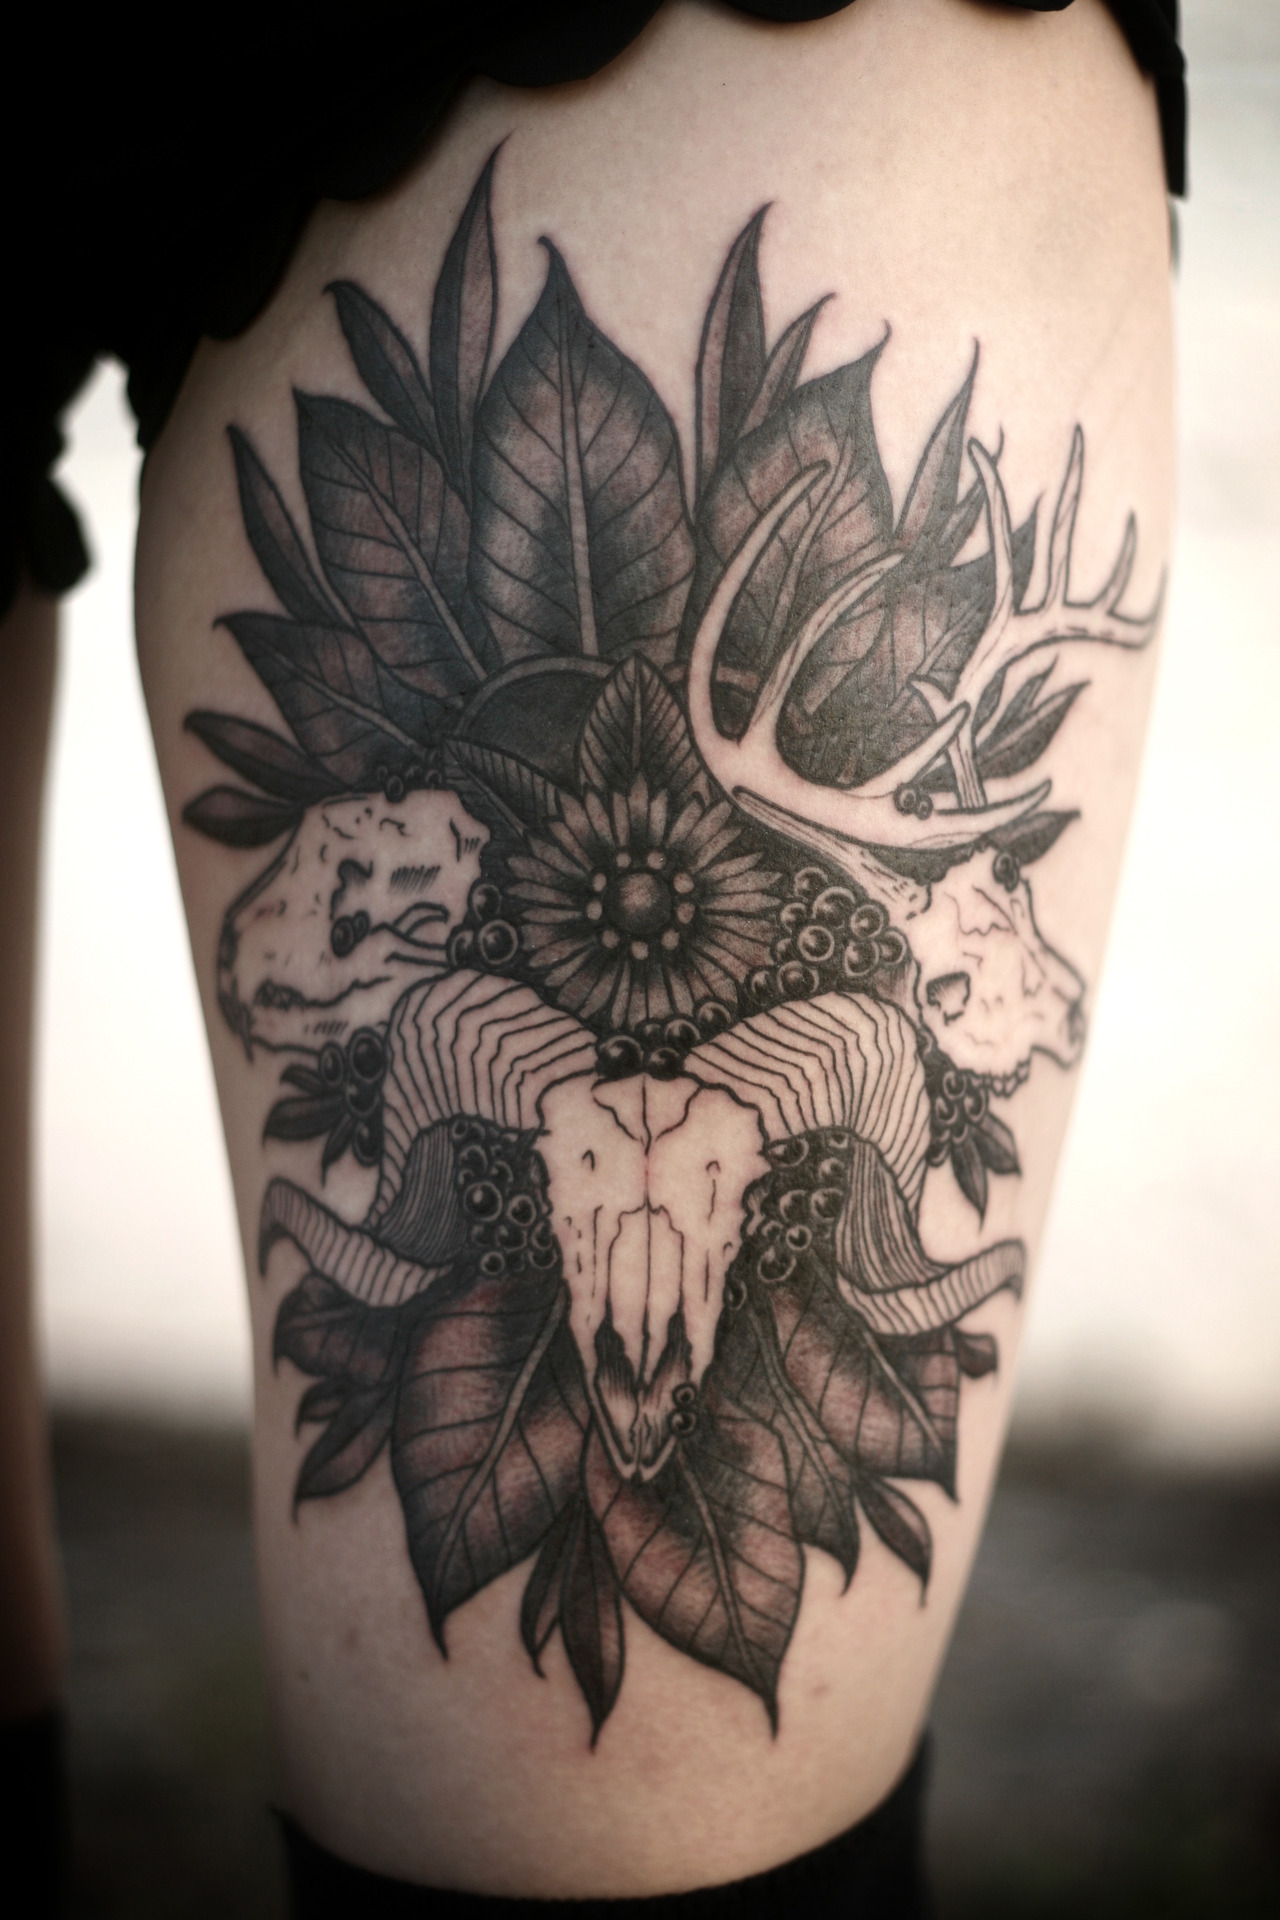 Alice Carrier Is A Tattoo Artist At Wonderland Tattoo In: ALICE CARRIER, Tattoo Artist